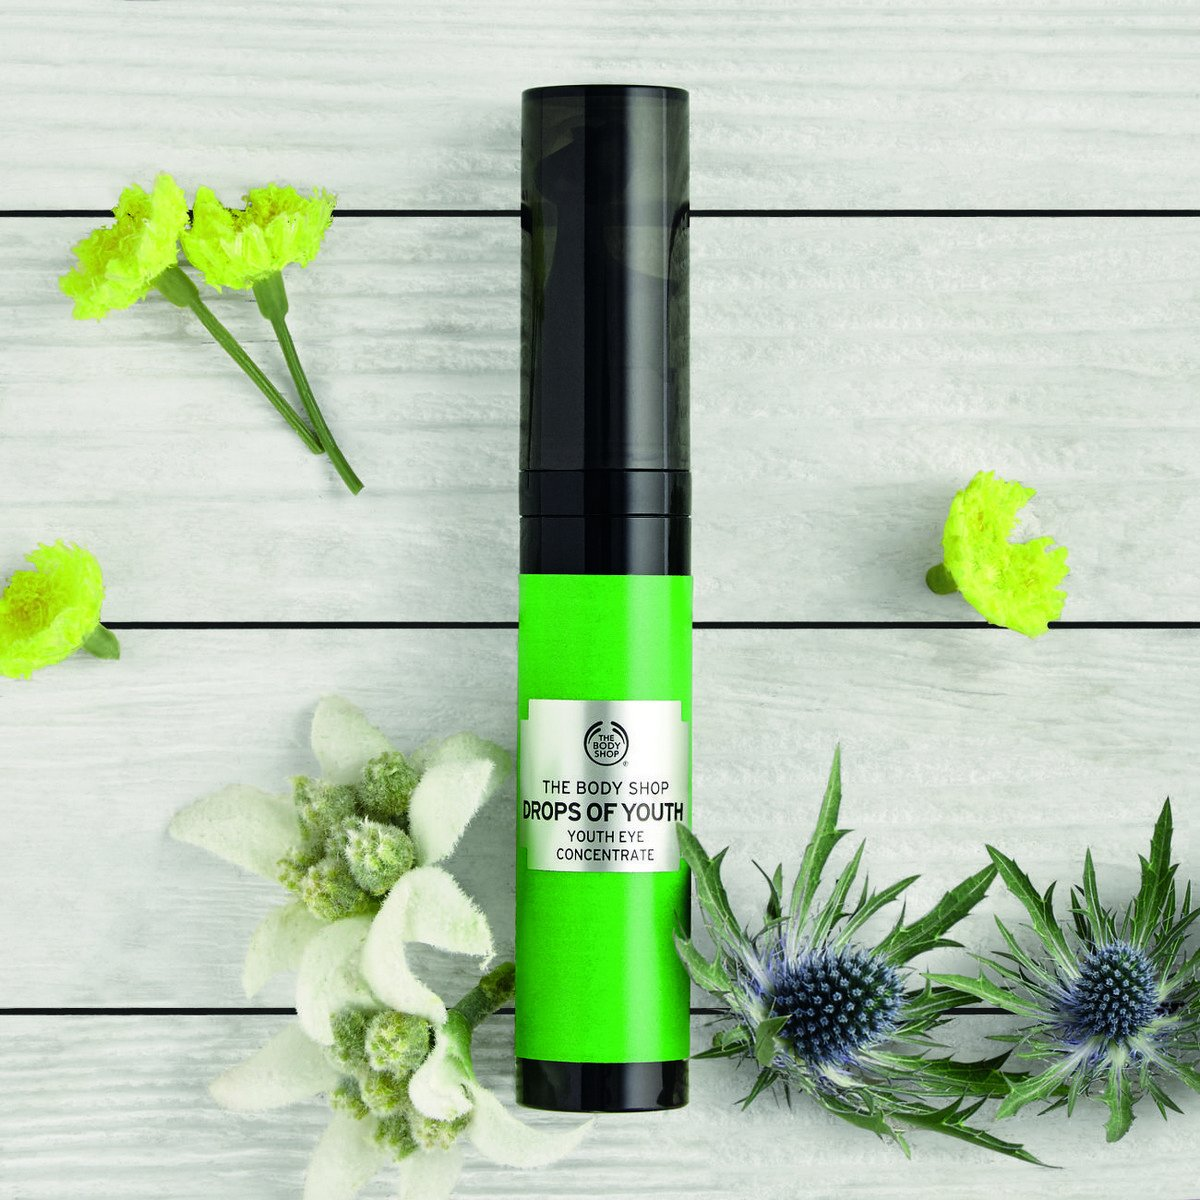 The Body Shop Drops of Youth Eye Concentrate, 0.33 Fl Oz by The Body Shop (Image #4)